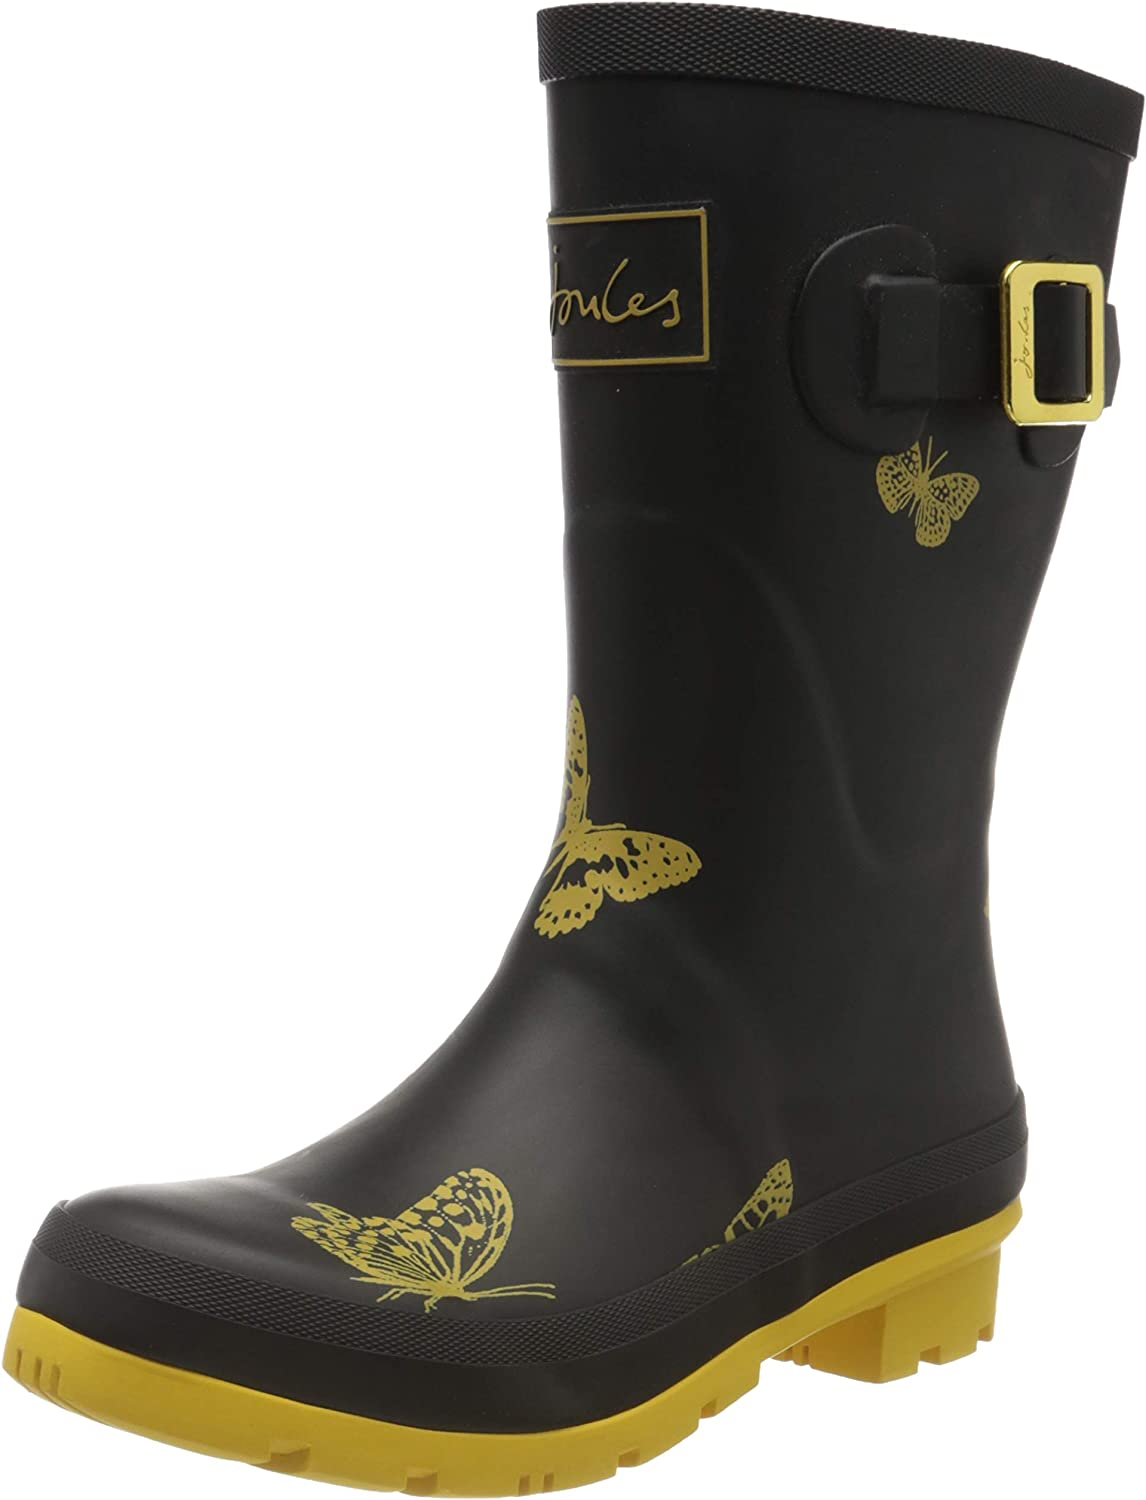 Joules Girl's Work Wellington Boots